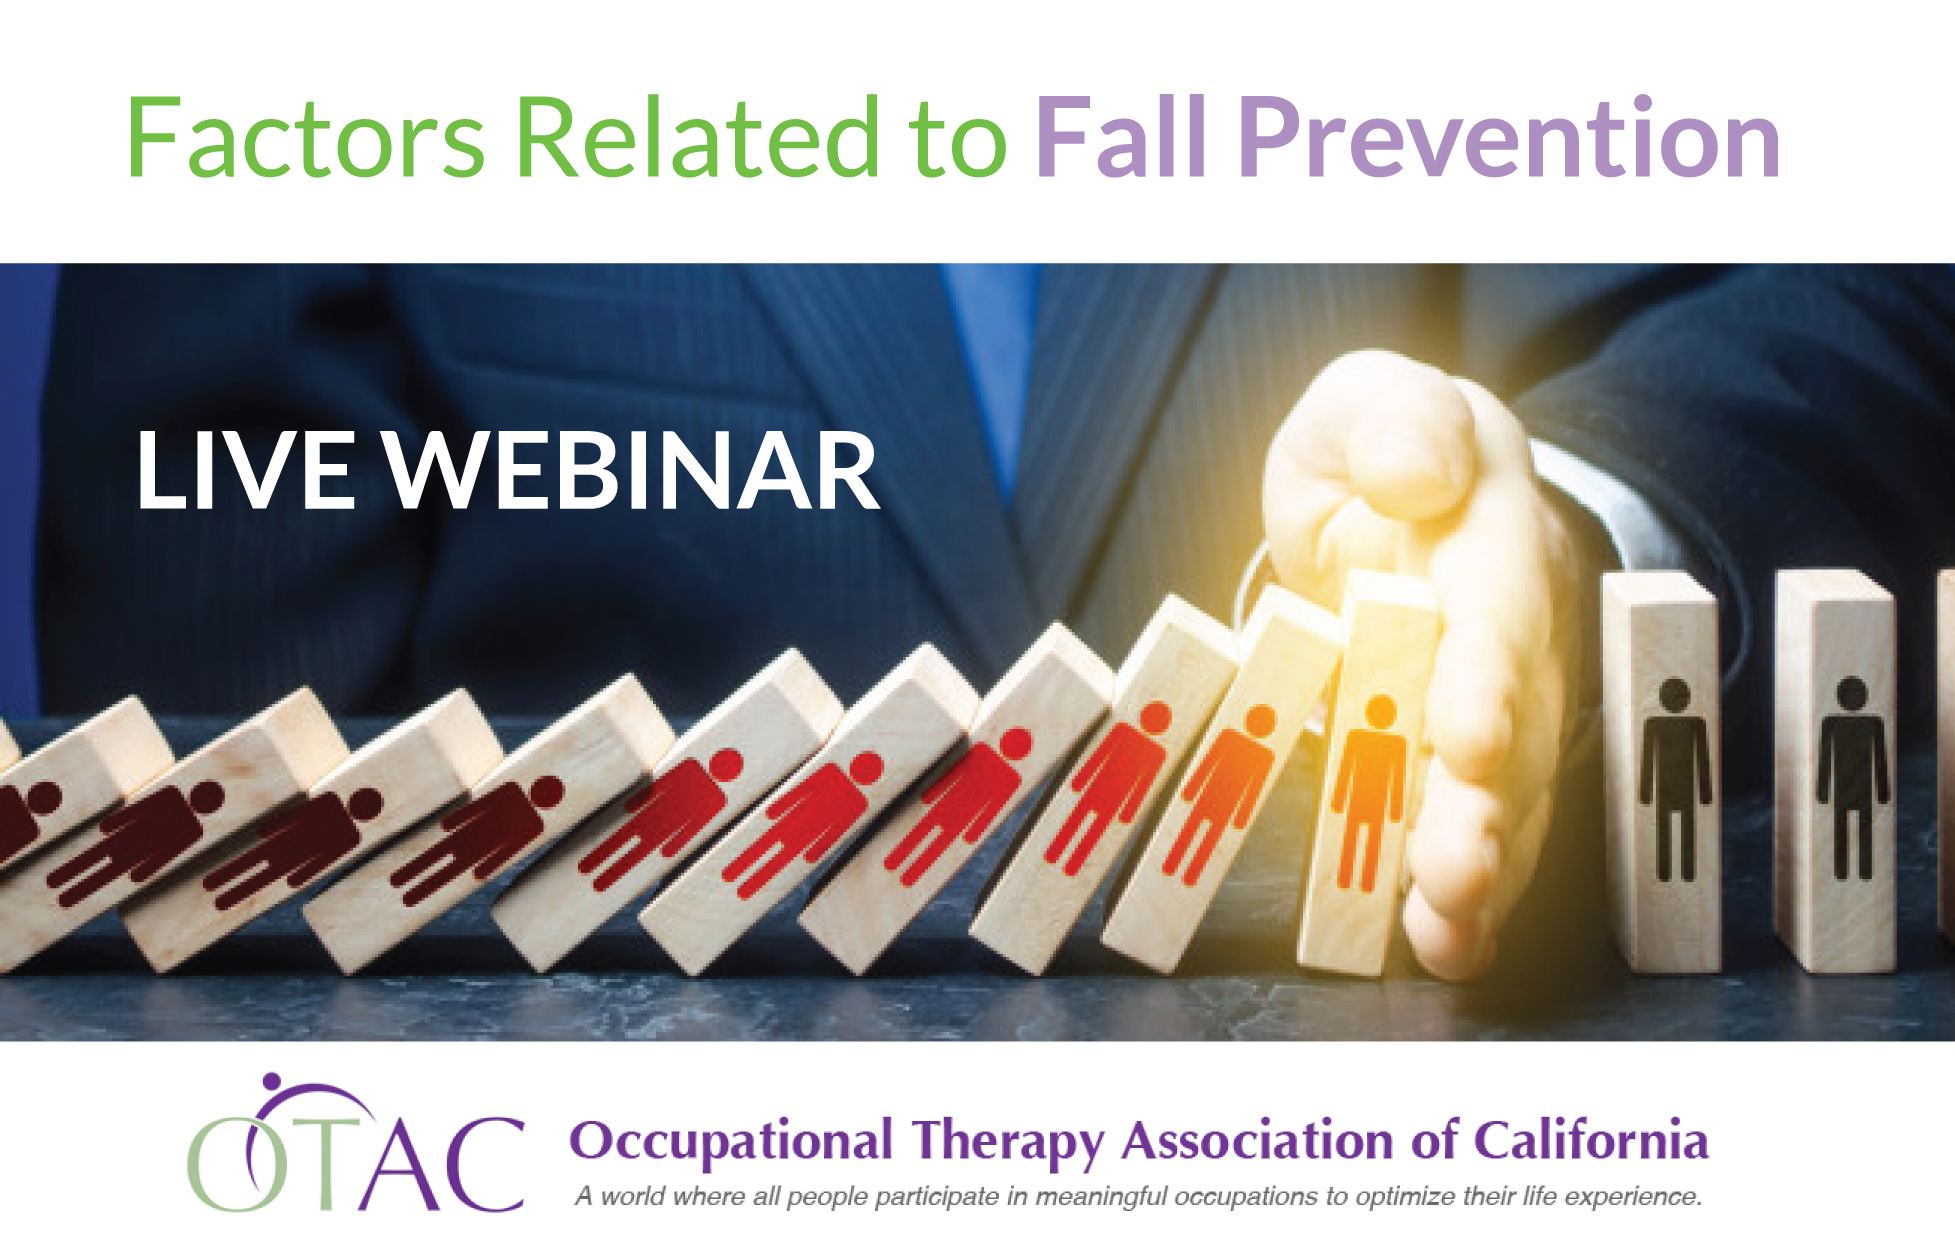 LIVE WEBINAR – FACTORS RELATED TO FALL PREVENTION